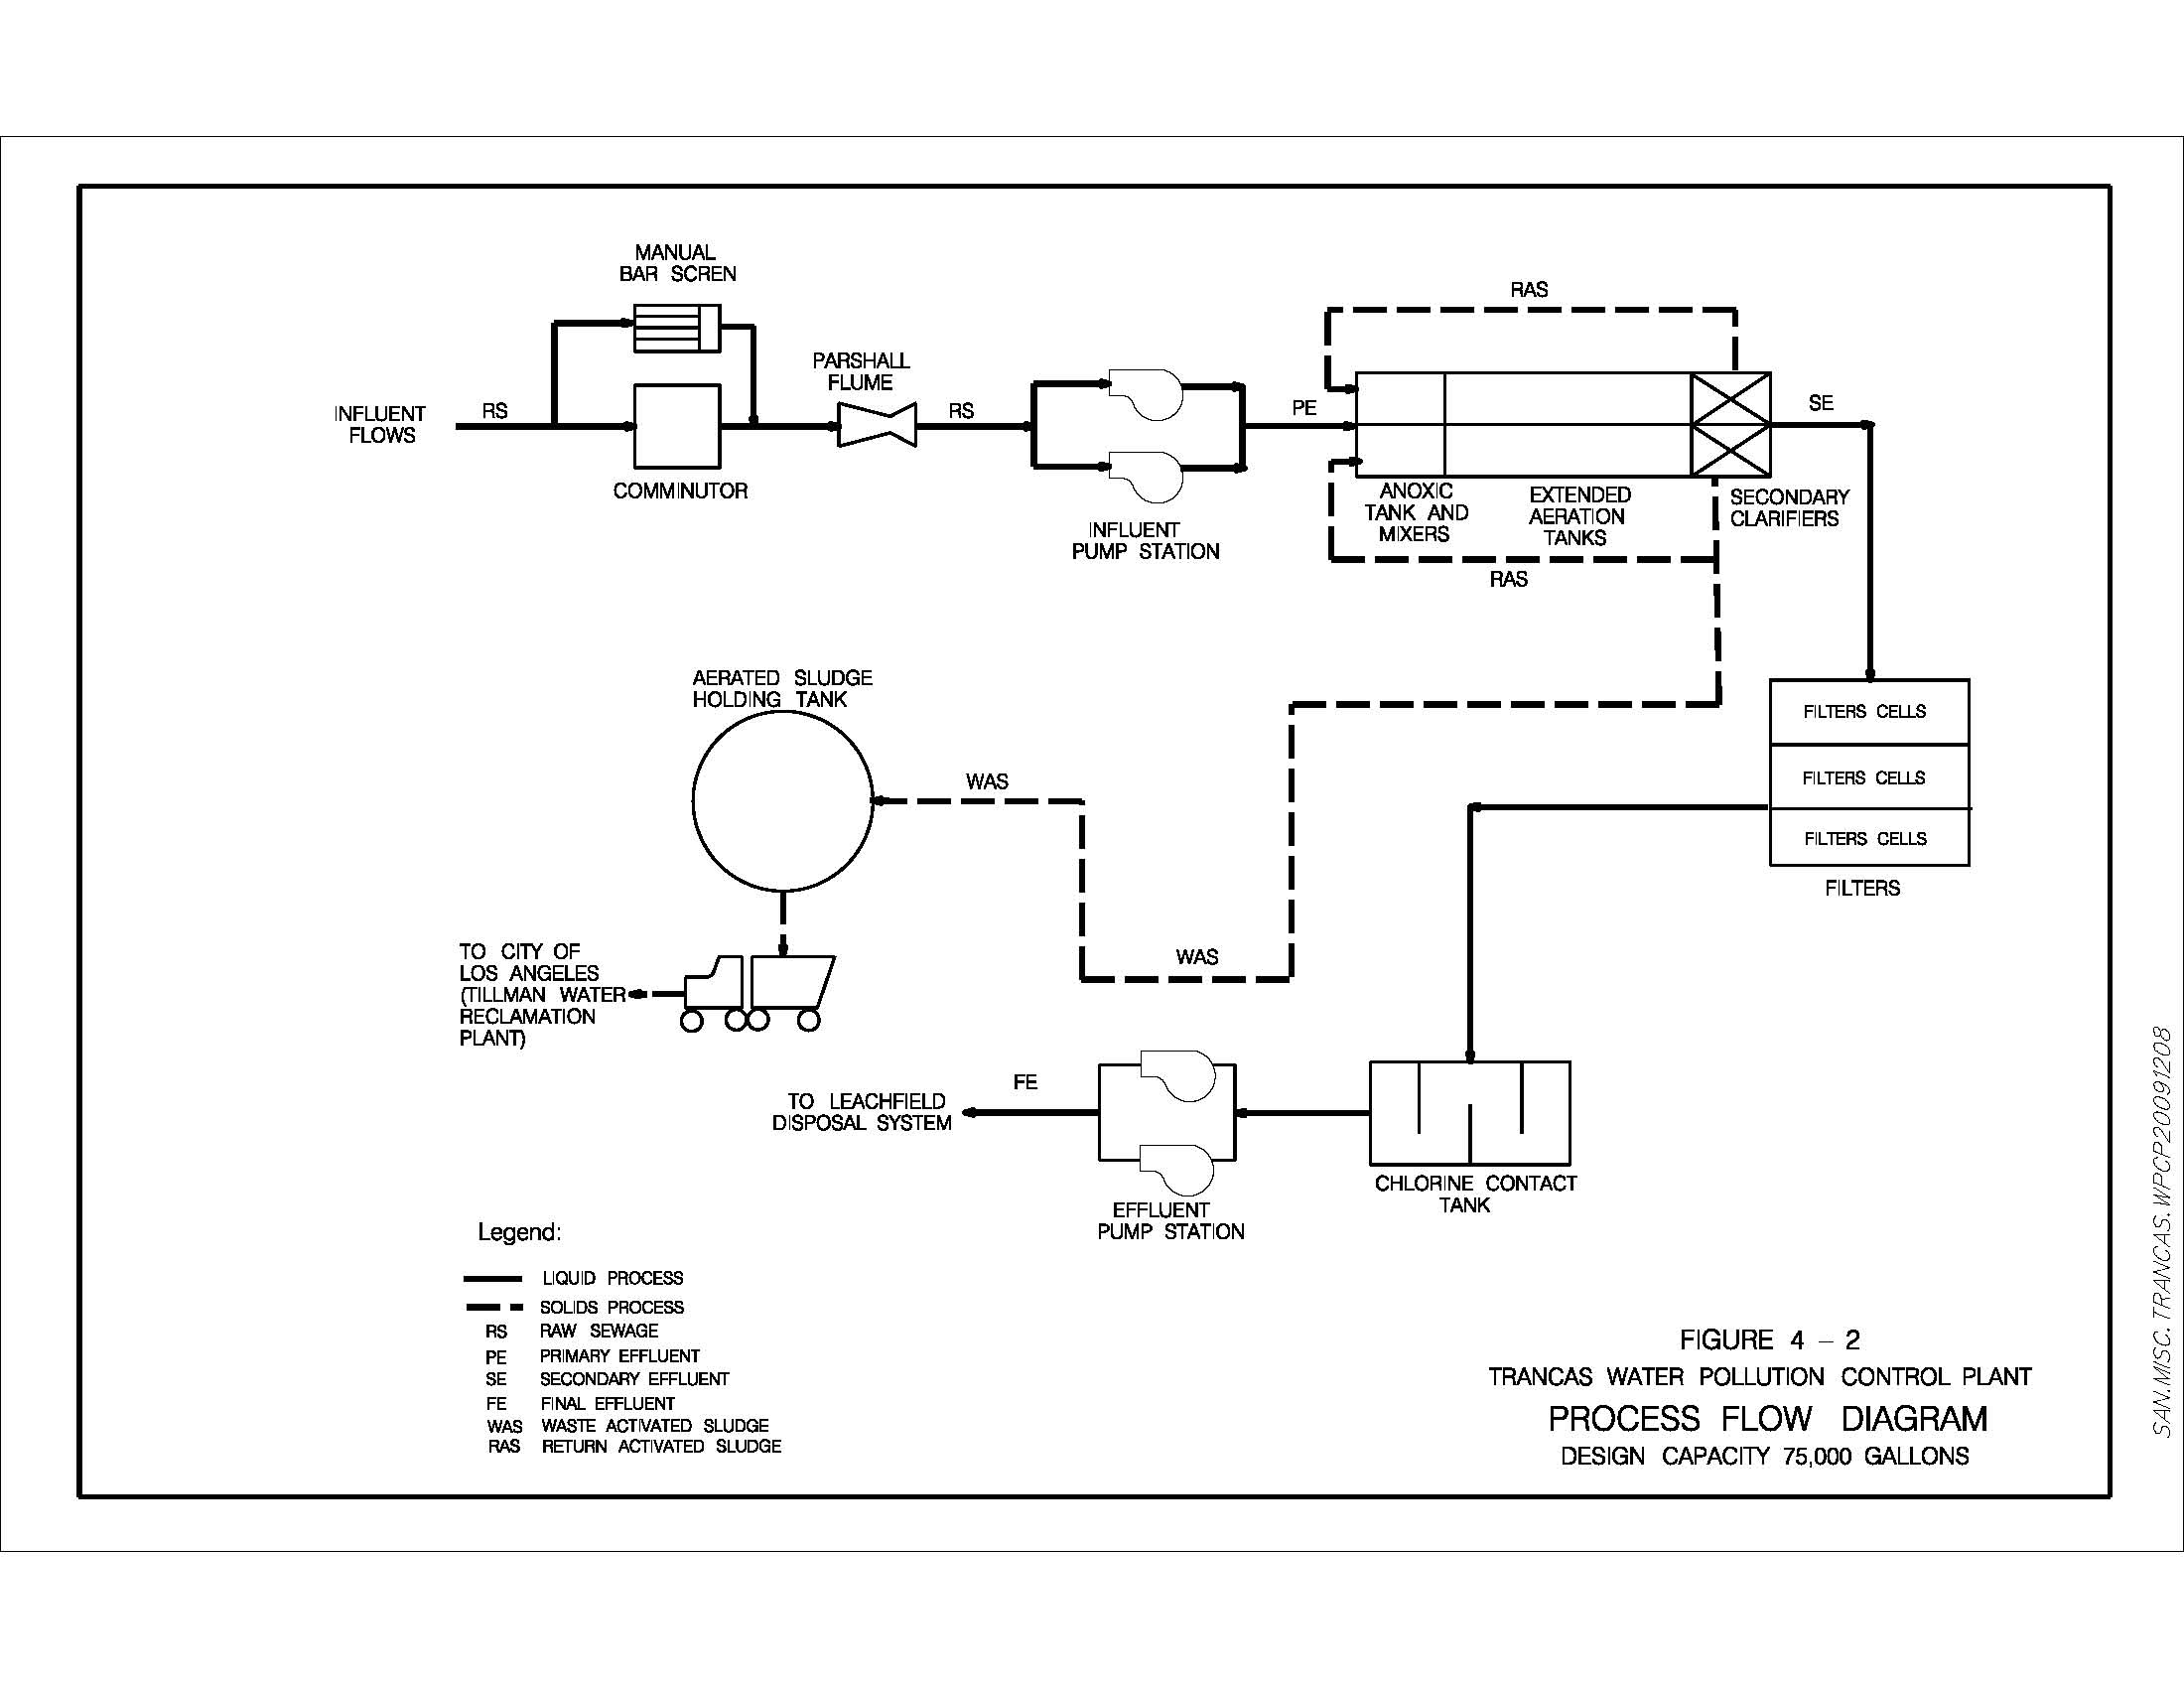 trancas water pollution control plant rh dpw lacounty gov process flow diagram industrial wastewater treatment plant process flow diagram for industrial wastewater treatment plant filetype pdf